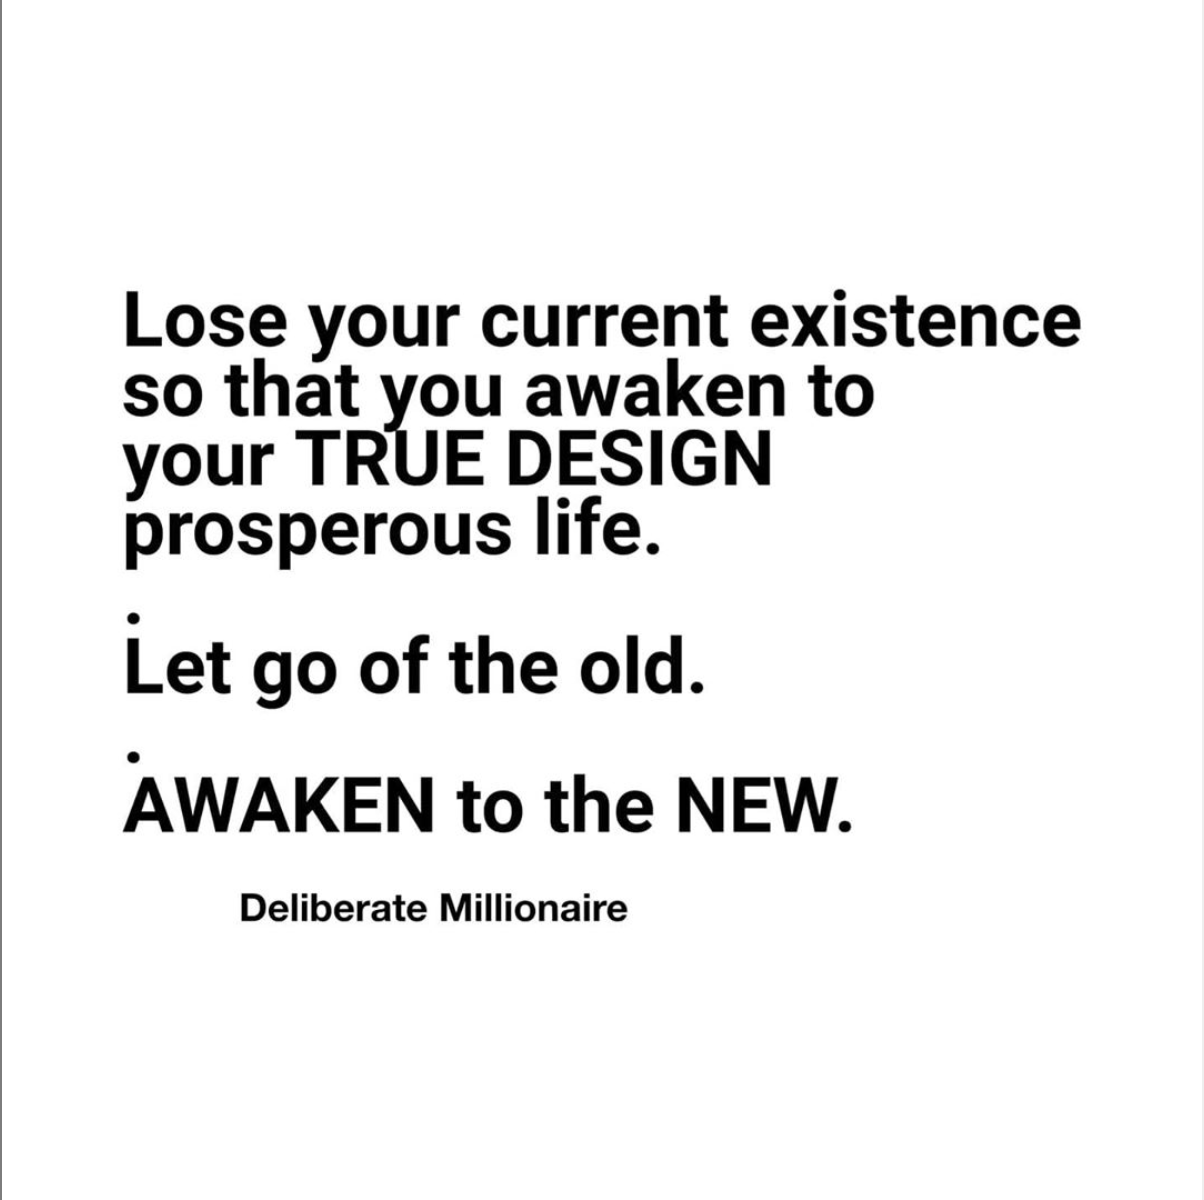 Lose Your Current Existence So That You Can Find Your 'True Design' Prosperous Life